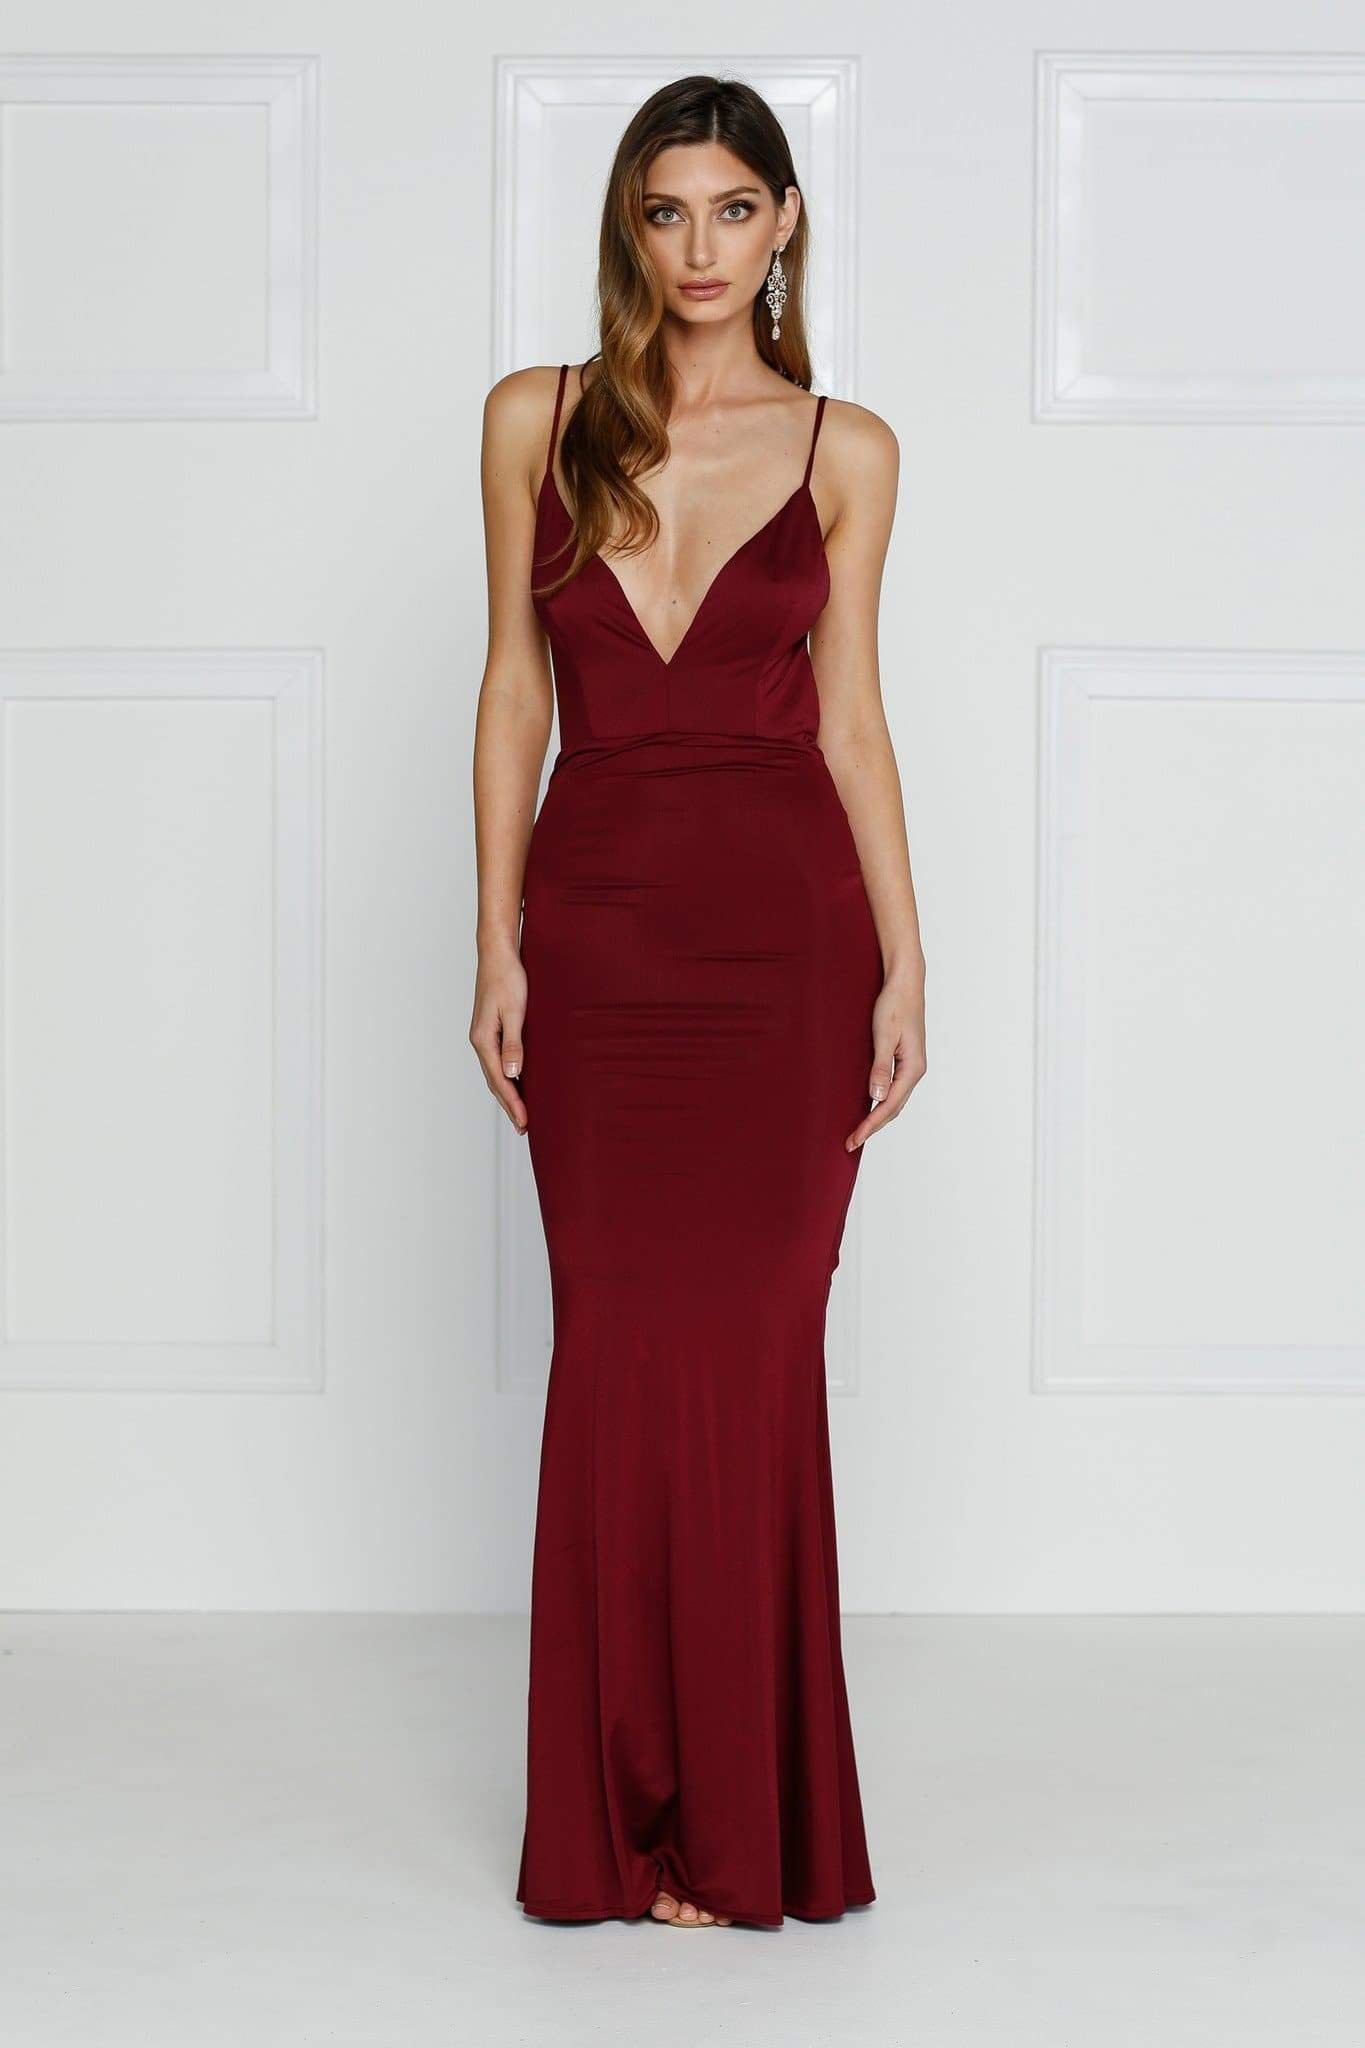 Penelope Luxe - Burgundy Backless Dress with Back Knot Design